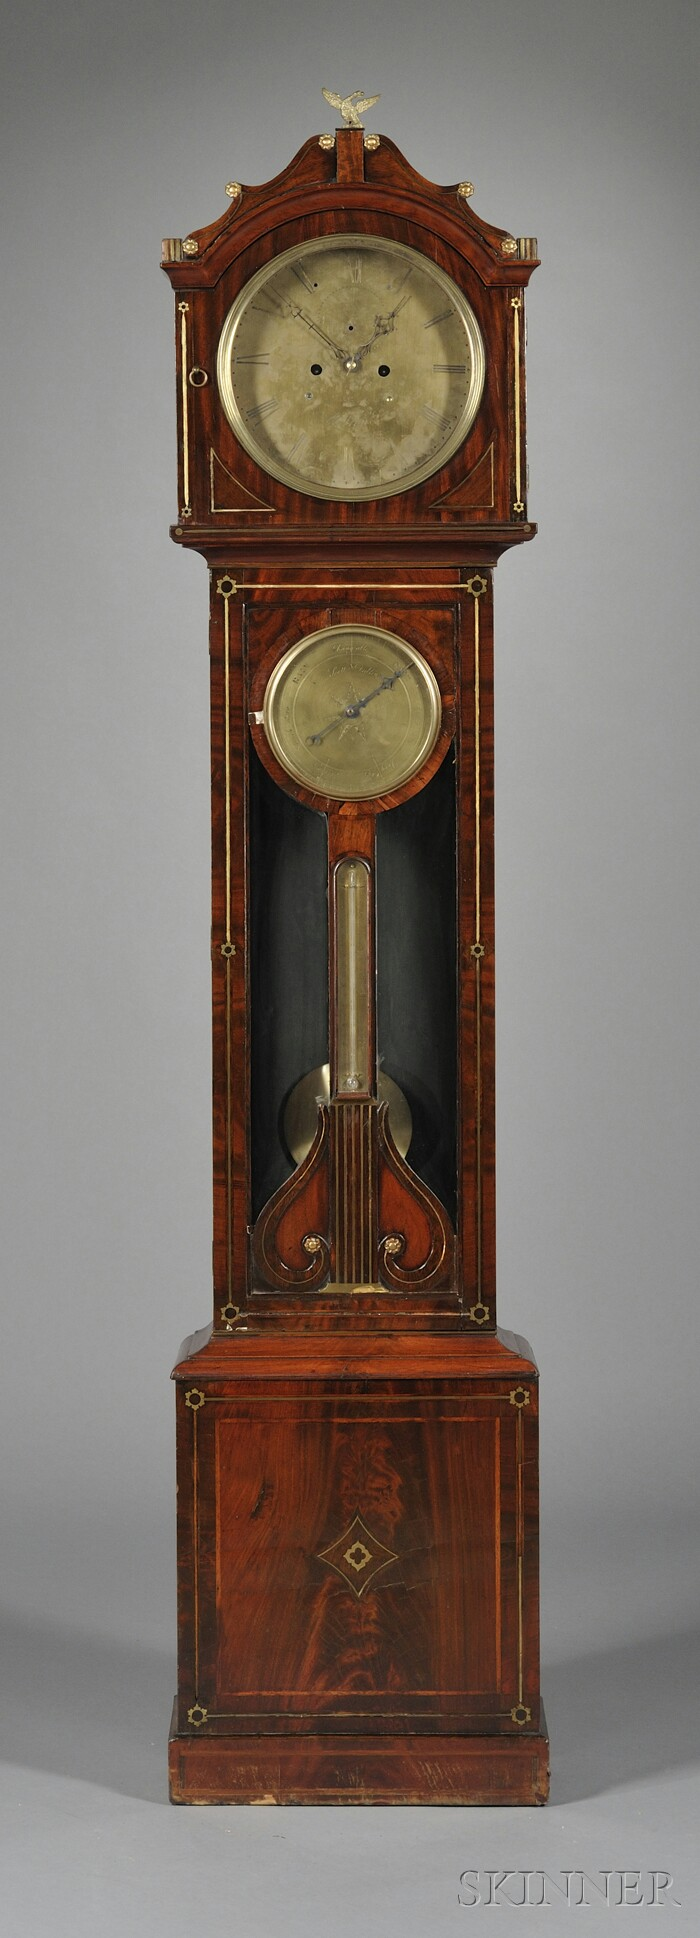 Regency Mahogany and Brass-inlaid Tall Case Clock with Barometer and Thermometer